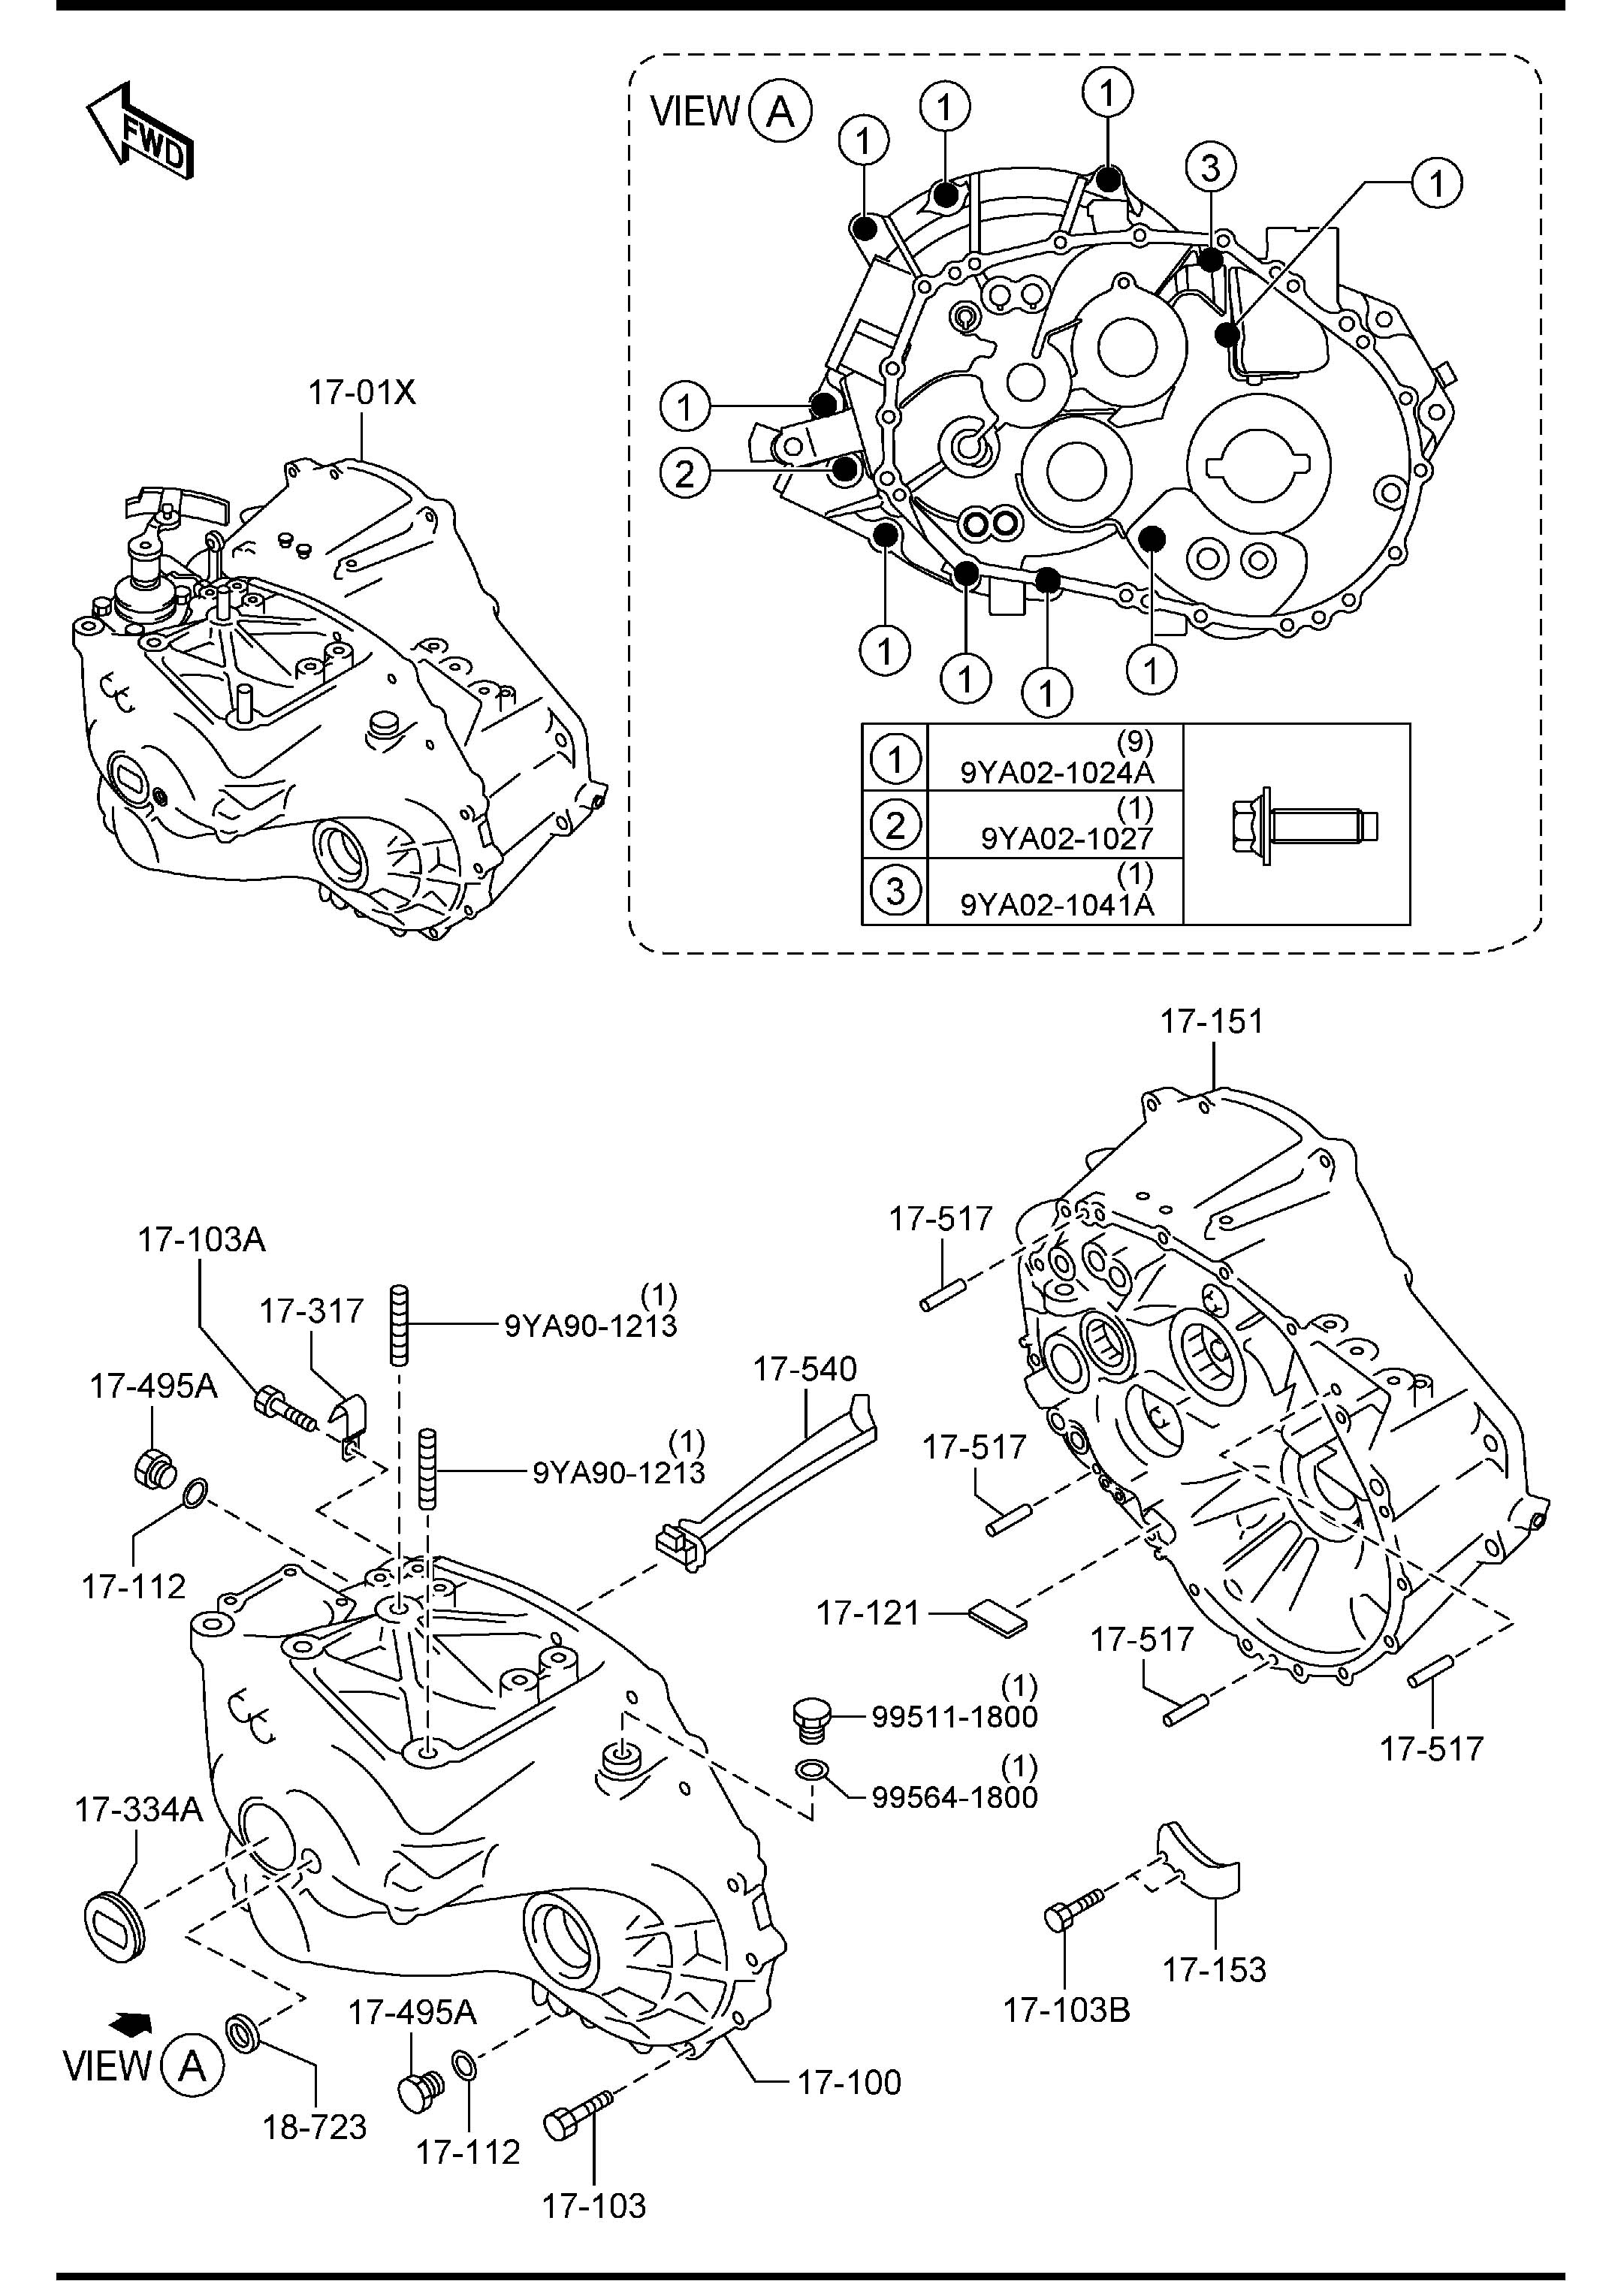 mazda 3 wiring diagram uk